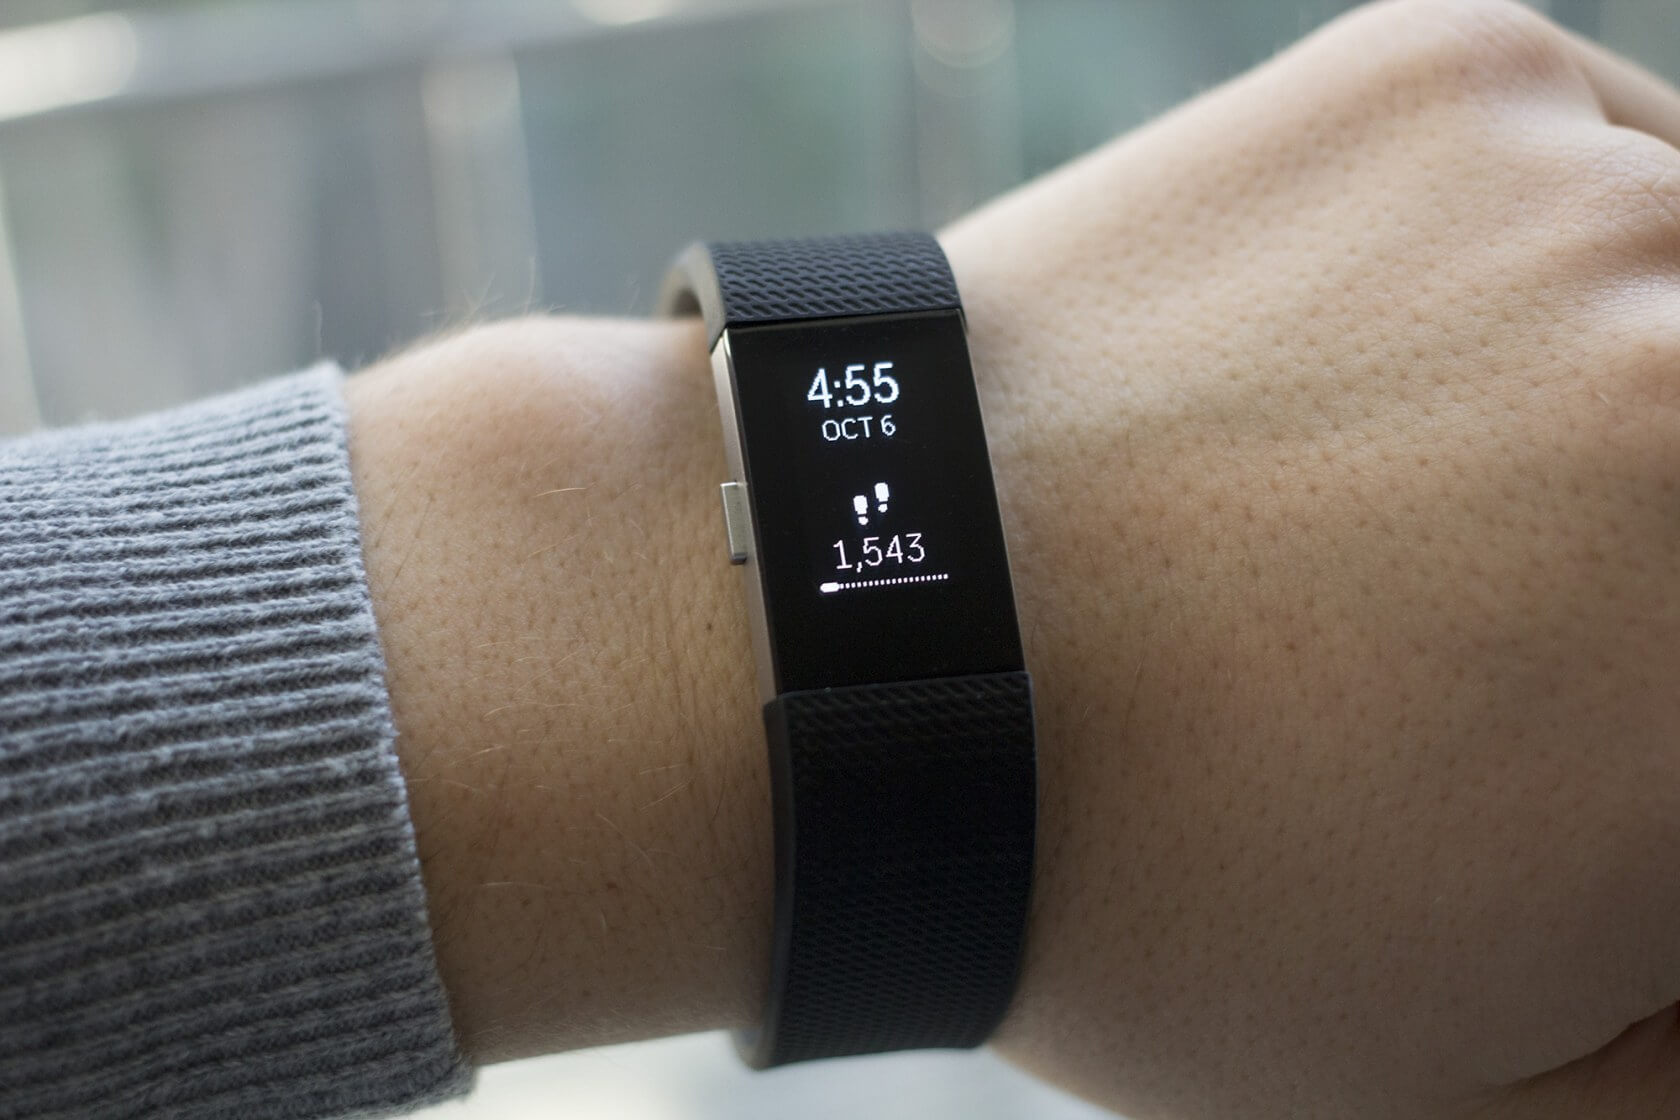 US regulators are investigating claims that Fitbit and Garmin violated Philips' wearable device patents